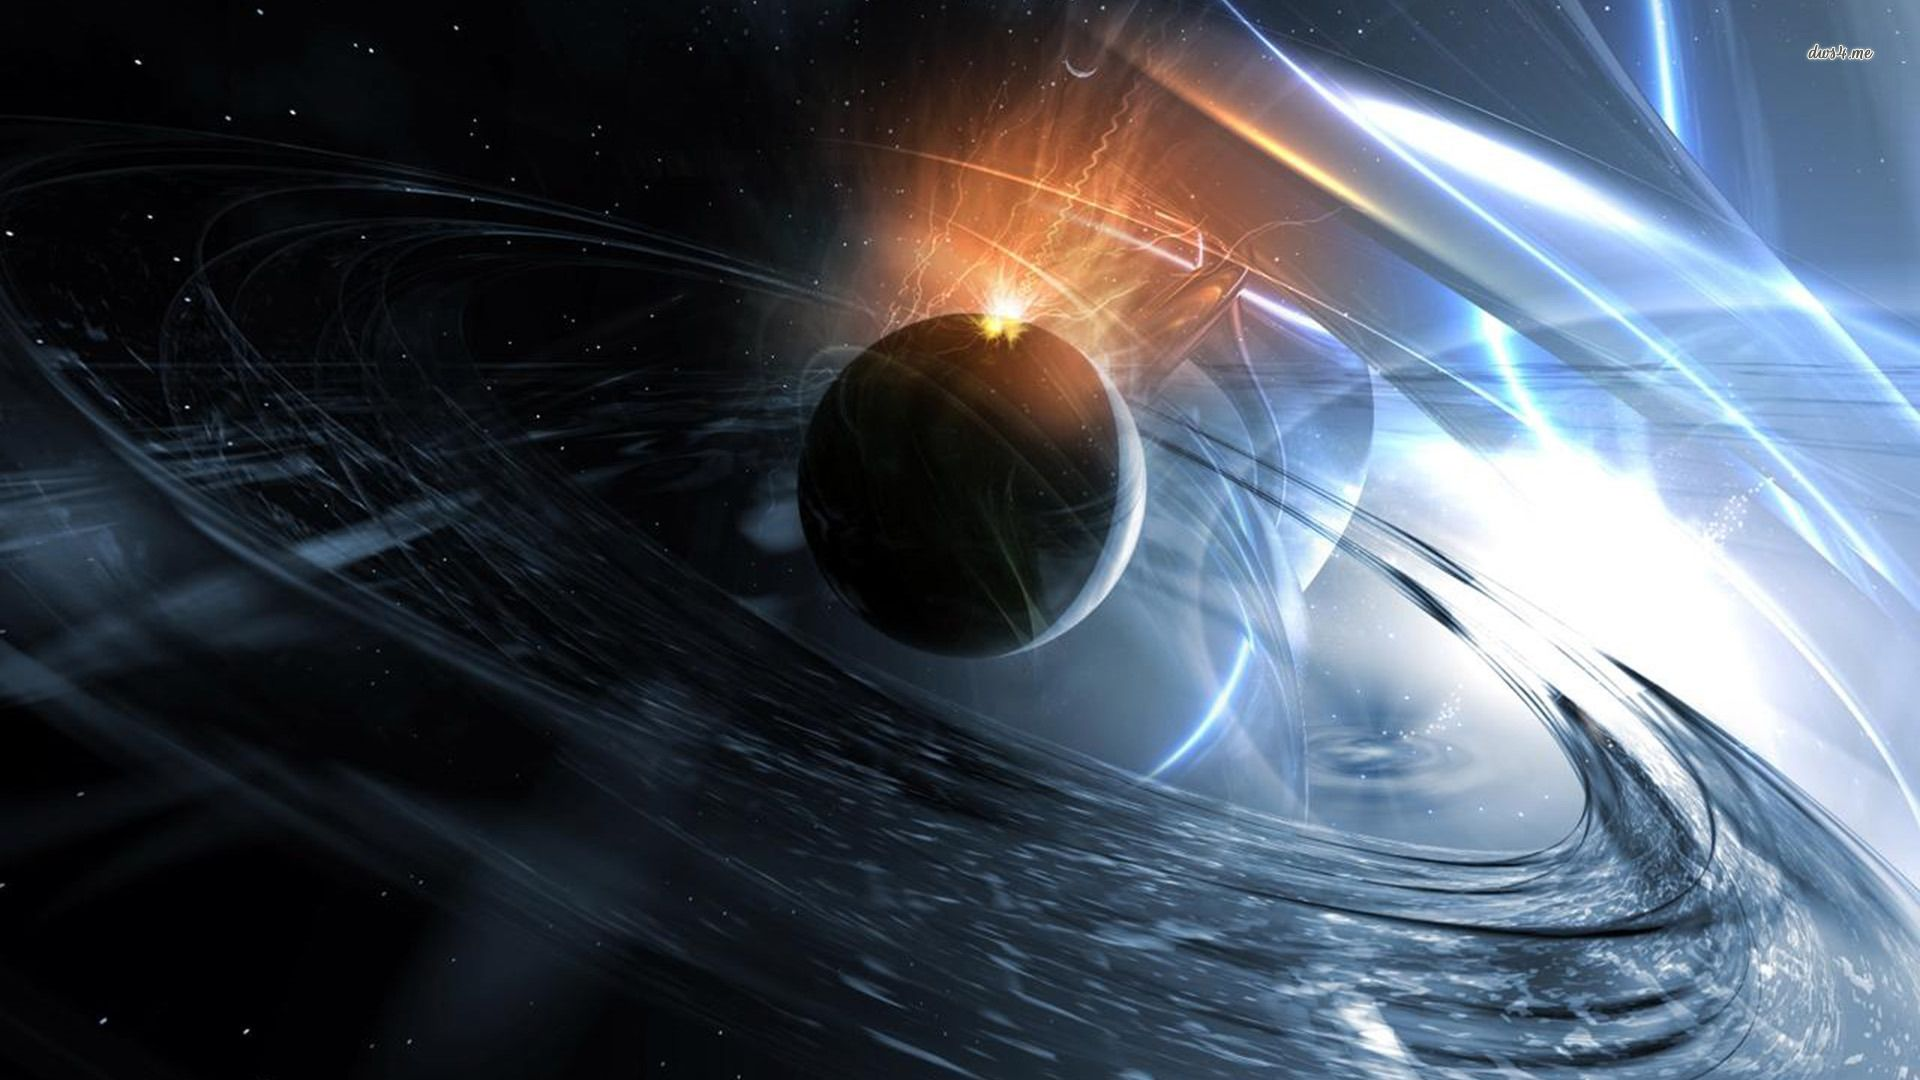 exploding planets wallpapersfor laptops - photo #3